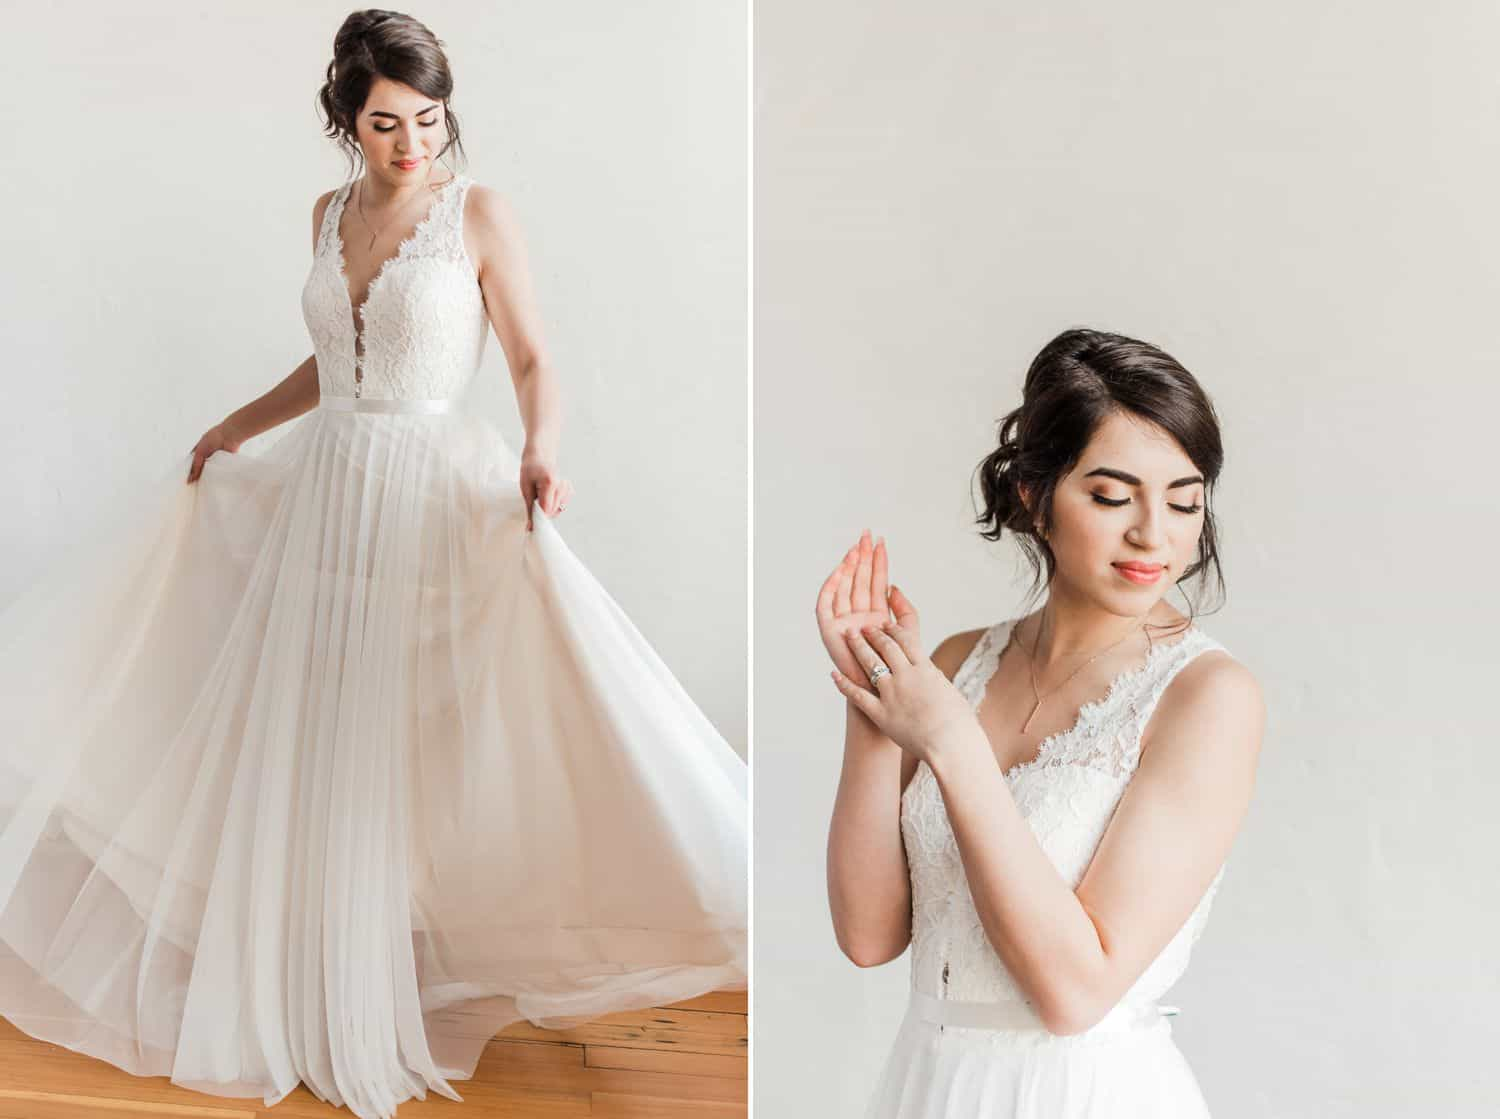 Tips for an Easy, Affordable Styled Shoot (bride in flowing dress against white background)